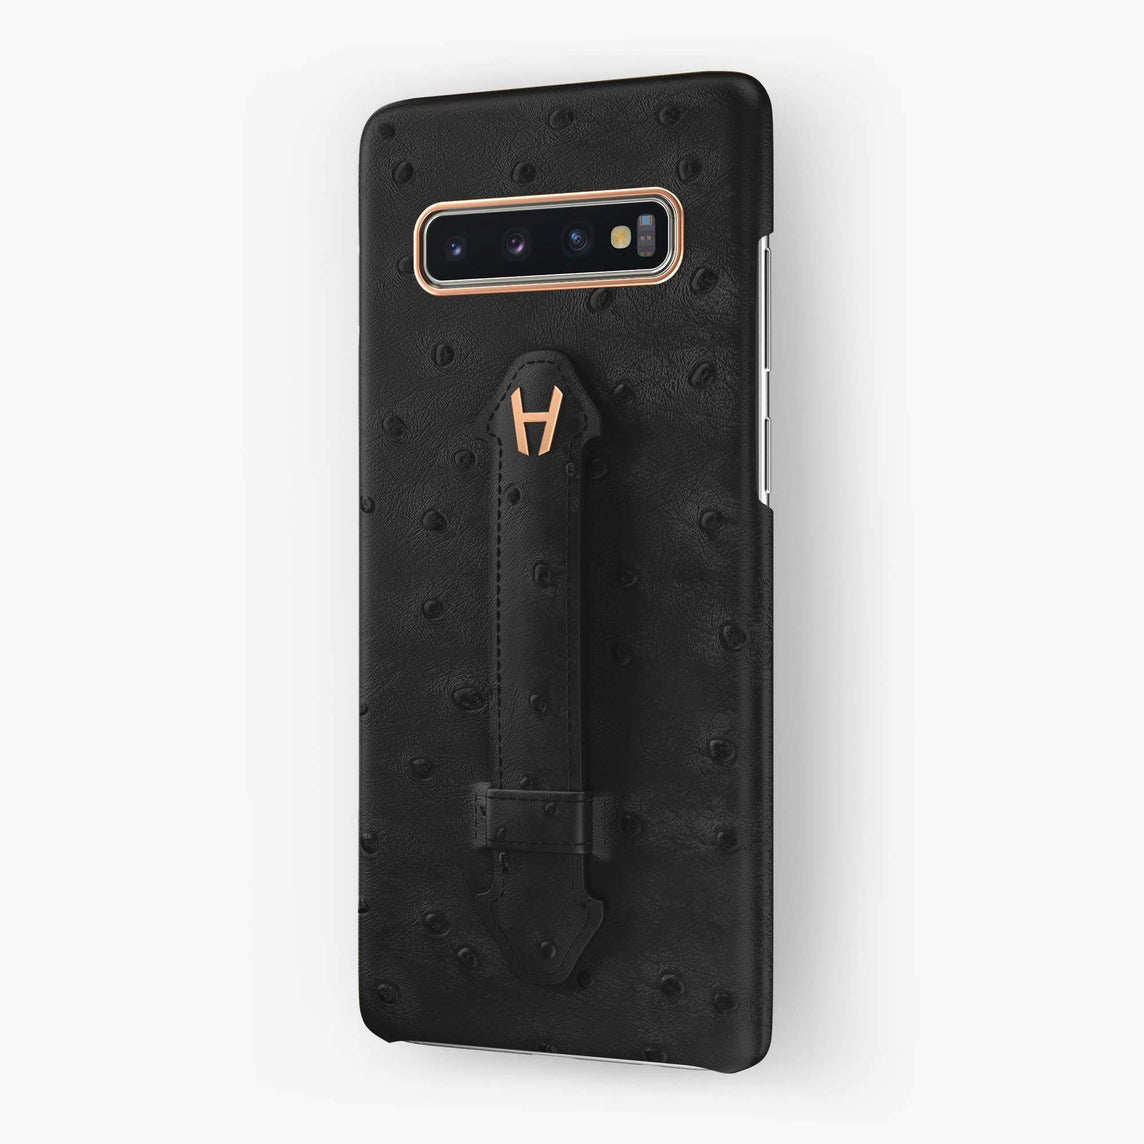 Ostrich Finger Case Samsung S10 Plus | Grey Anthracite - Rose Gold without-personalization